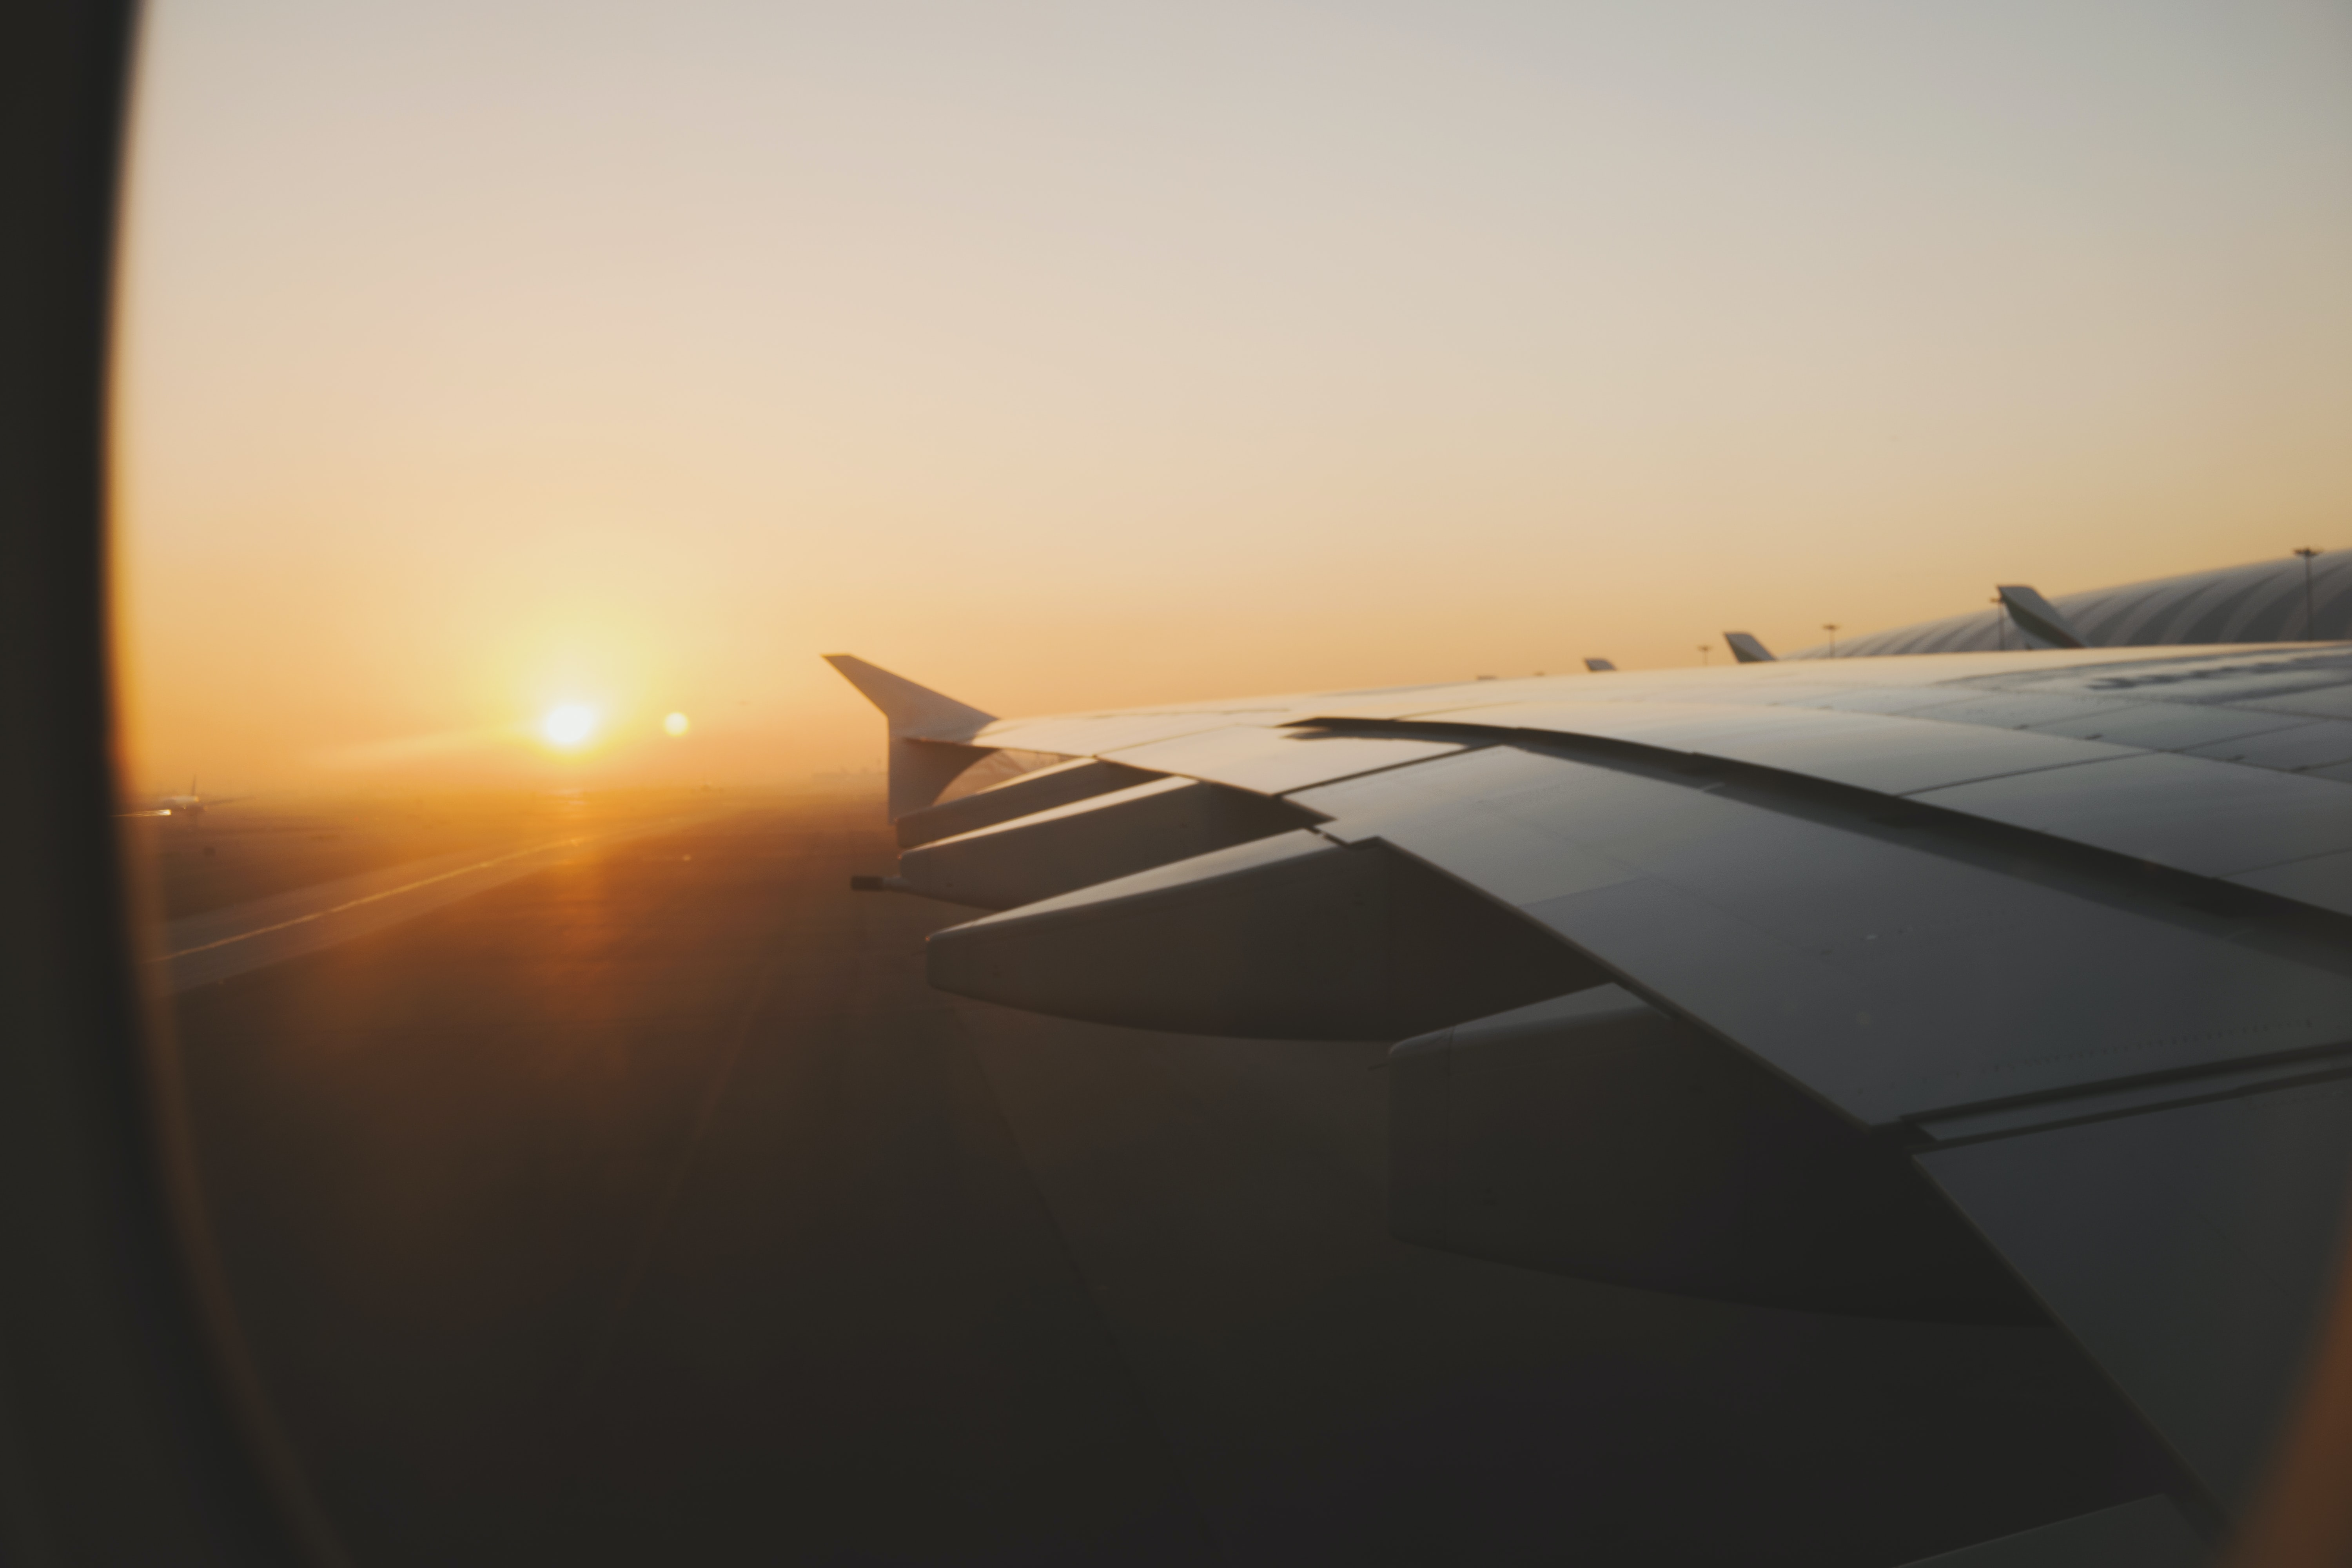 left side wing of airplane during golden hour